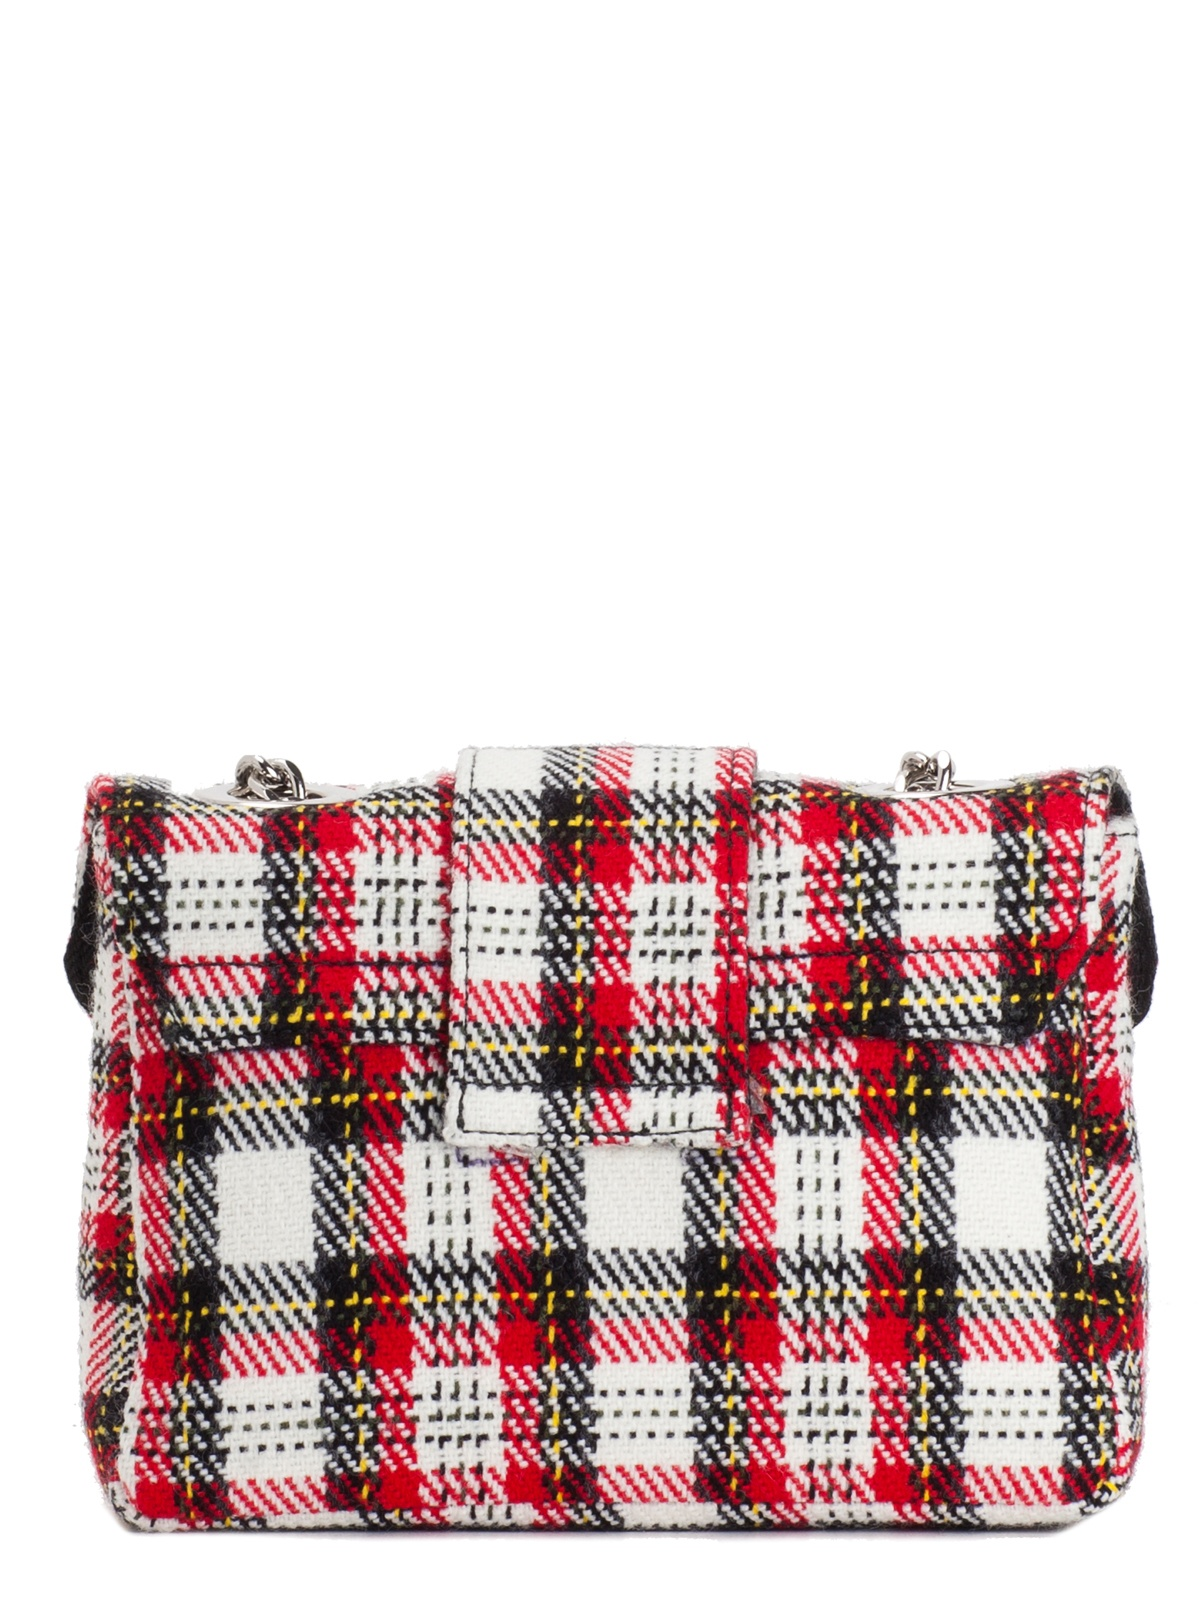 PARIS PLAID SMALL BAG | GIRISSIMA.COM - Collectible fashion to love and to last